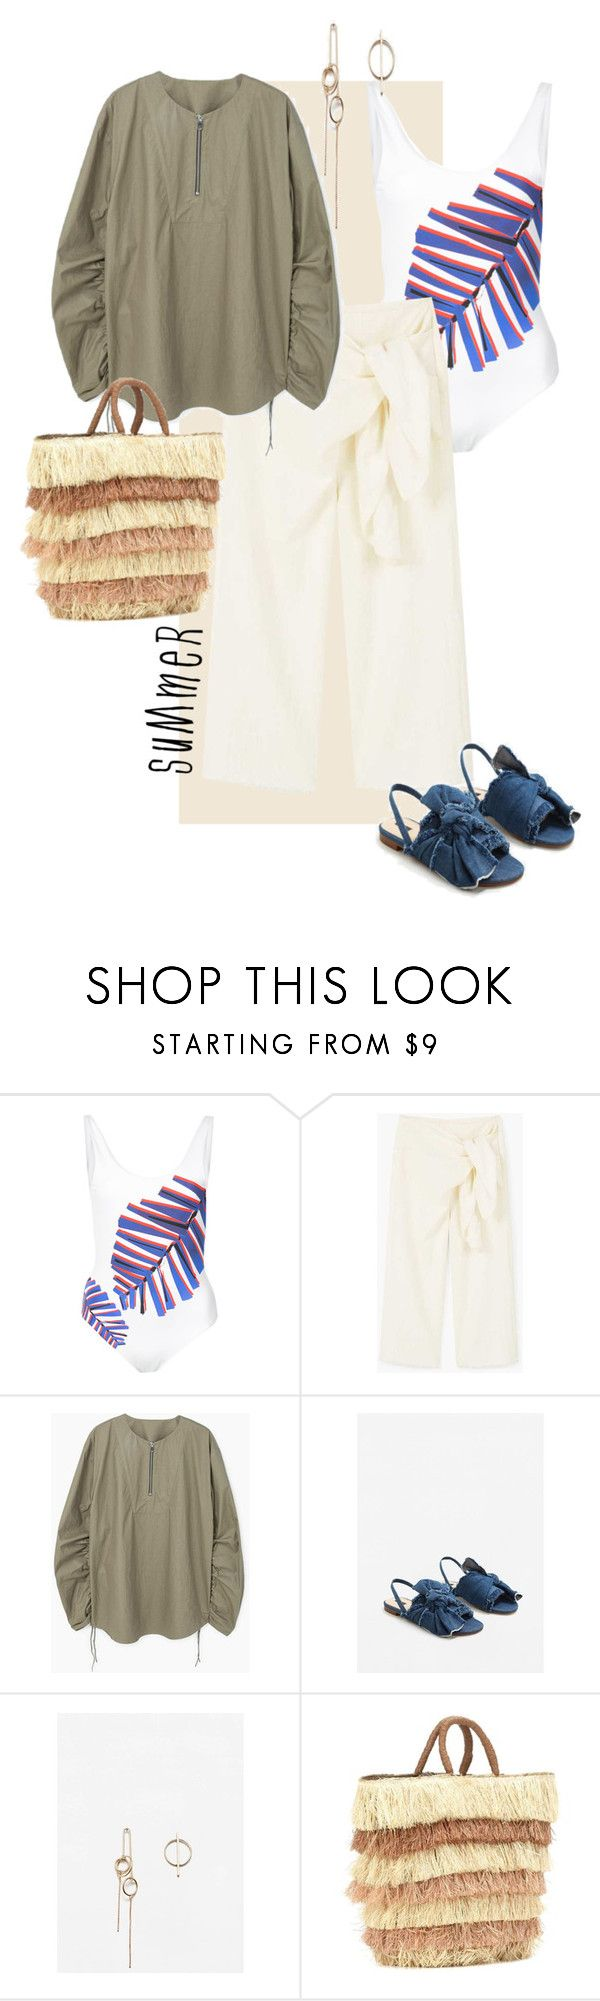 """""""Summer essentials"""" by statuslusso ❤ liked on Polyvore featuring ONIA, MANGO, Kayu and Summer"""